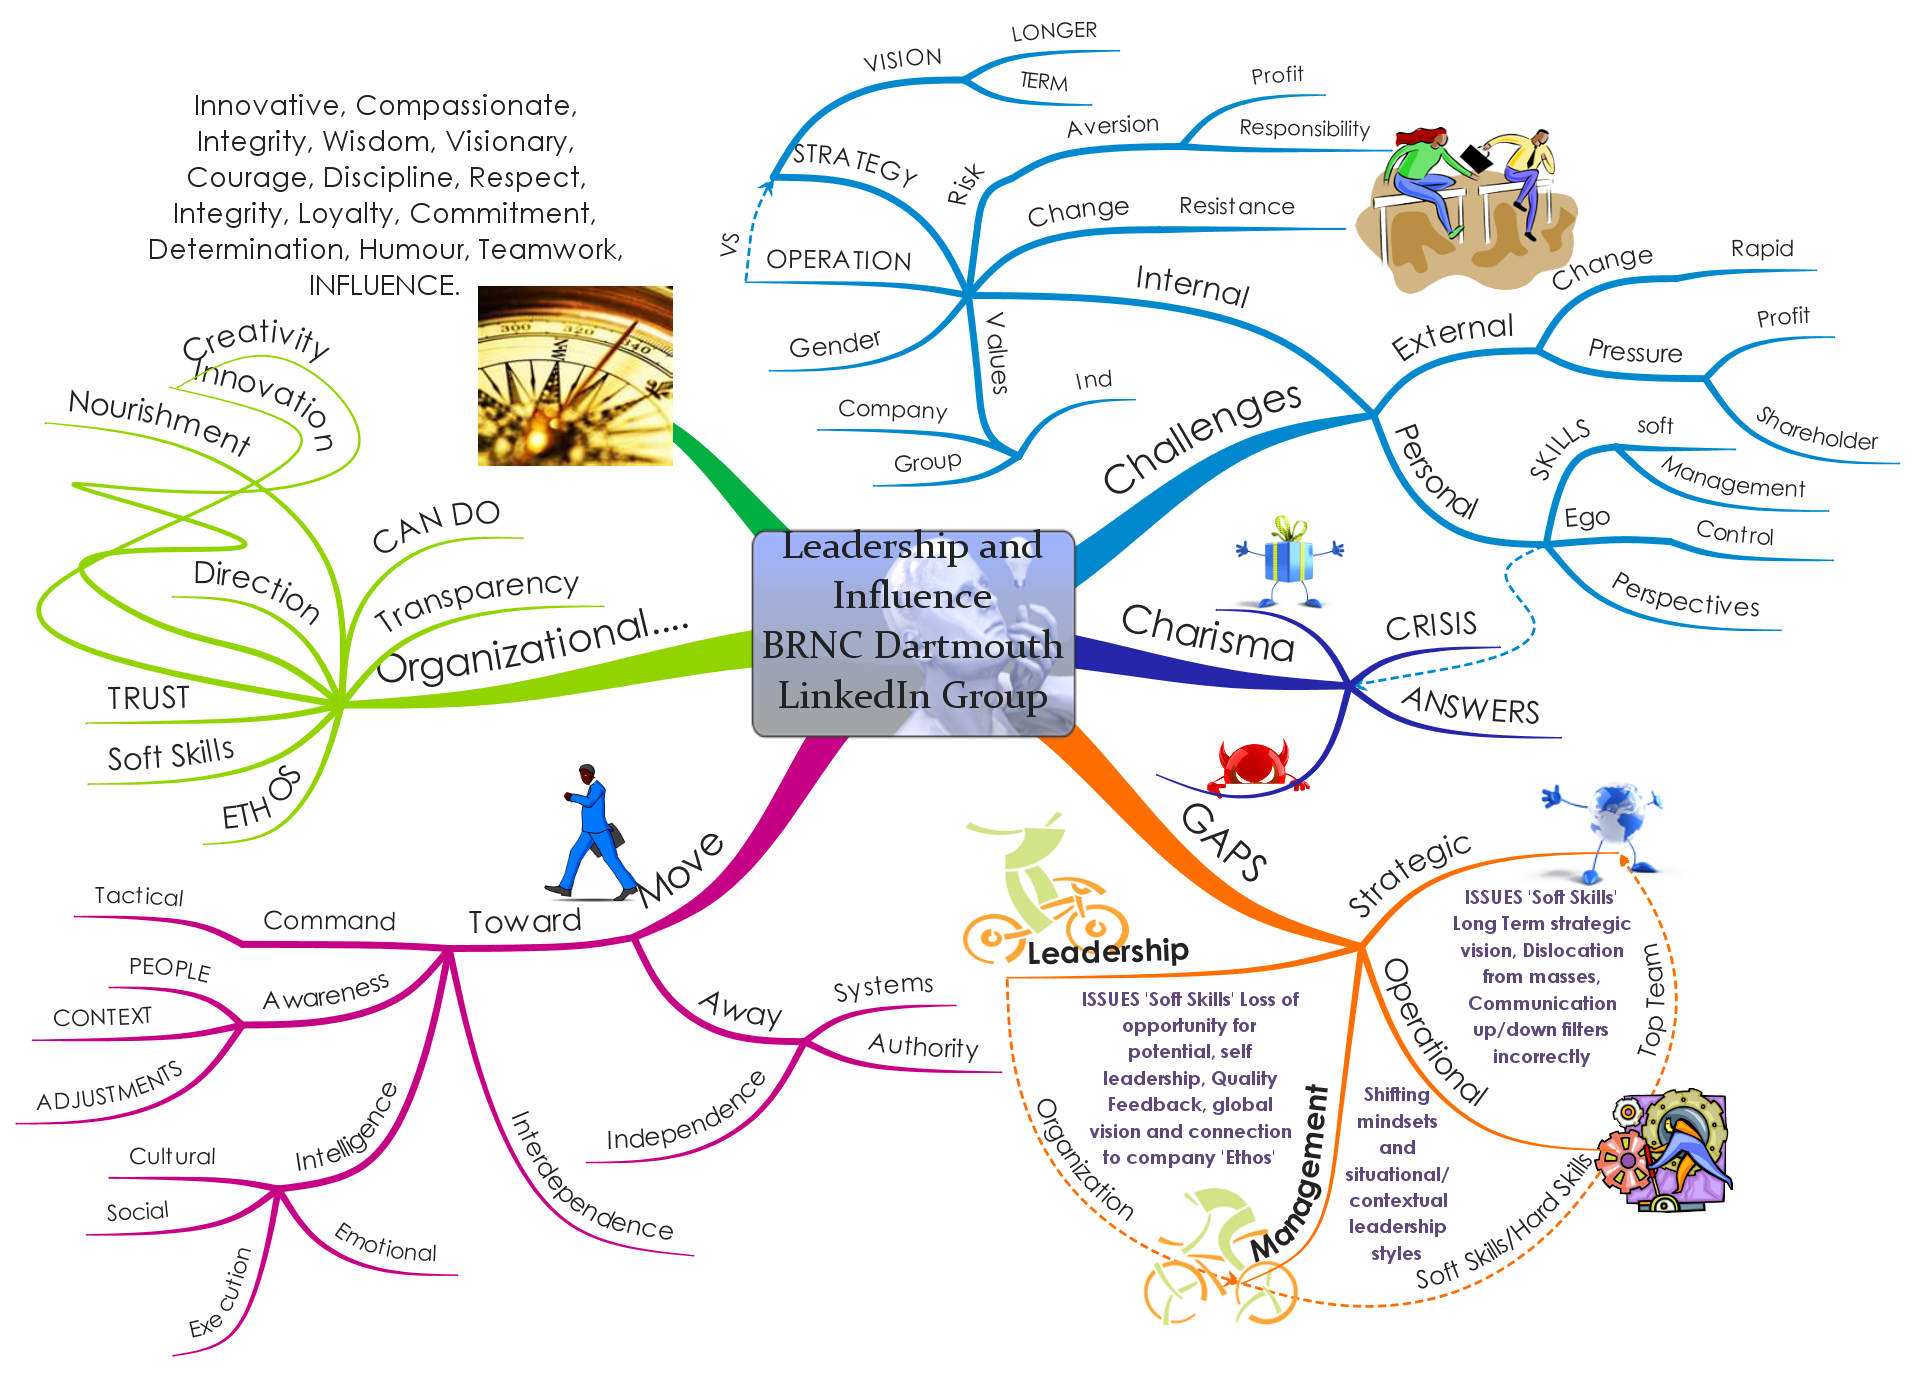 how to mind map mind mapping software leadership influence mind map